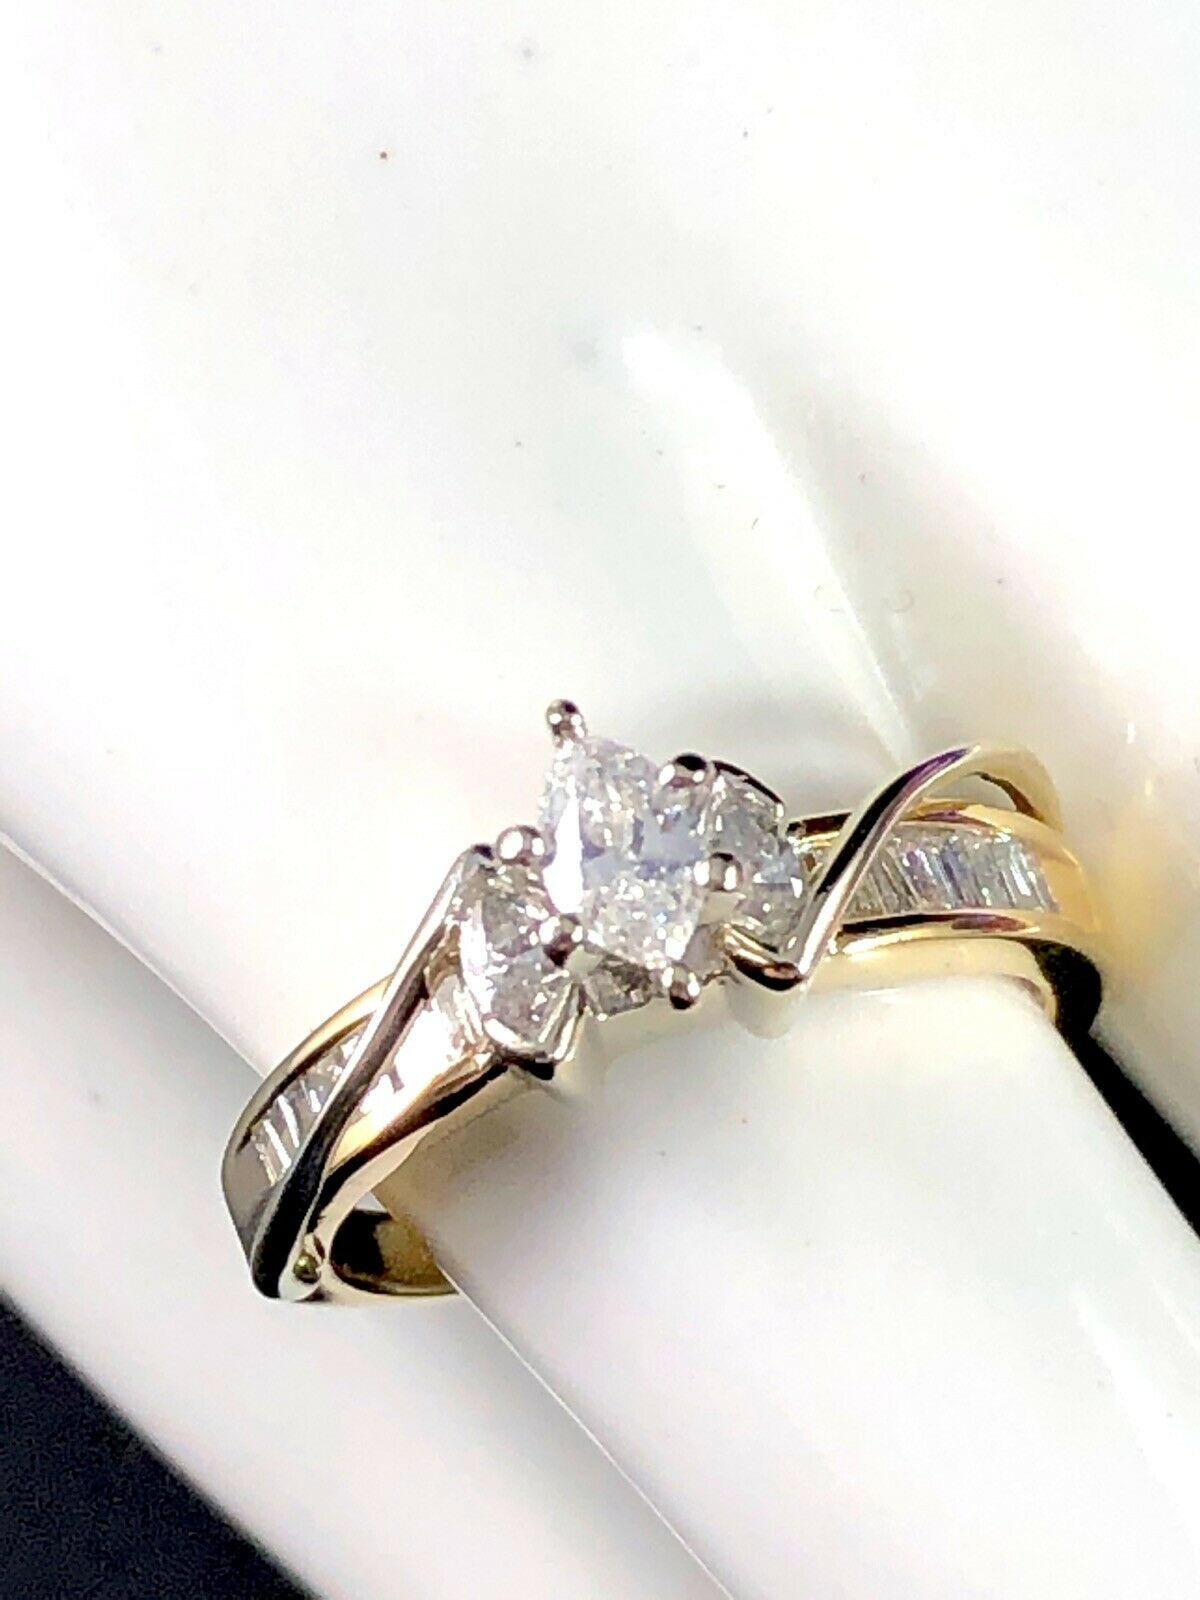 14K SOLID YELLOW gold 1 4 CT NATURAL MARQUISE DIAMOND .61 CTW ENGAGEMENT RING